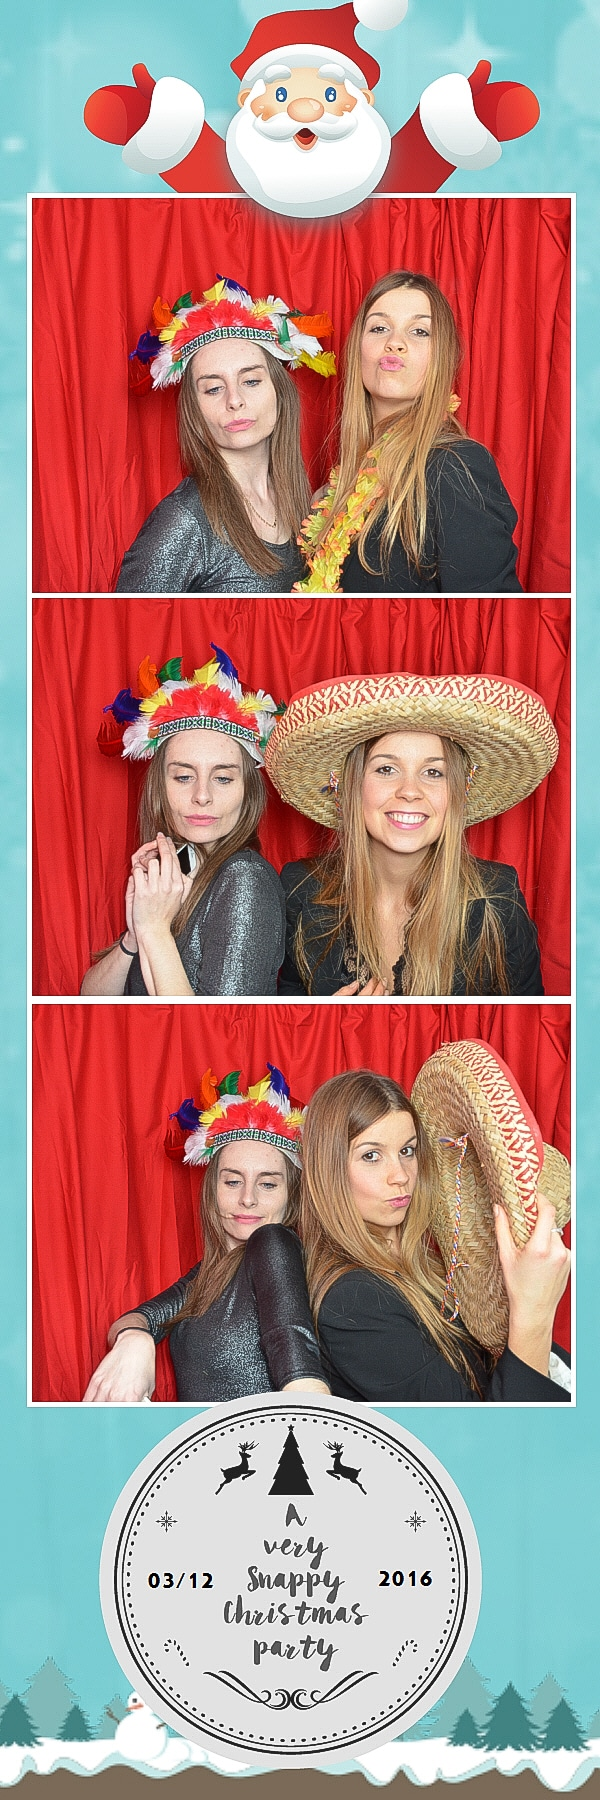 father christmas design photo booth